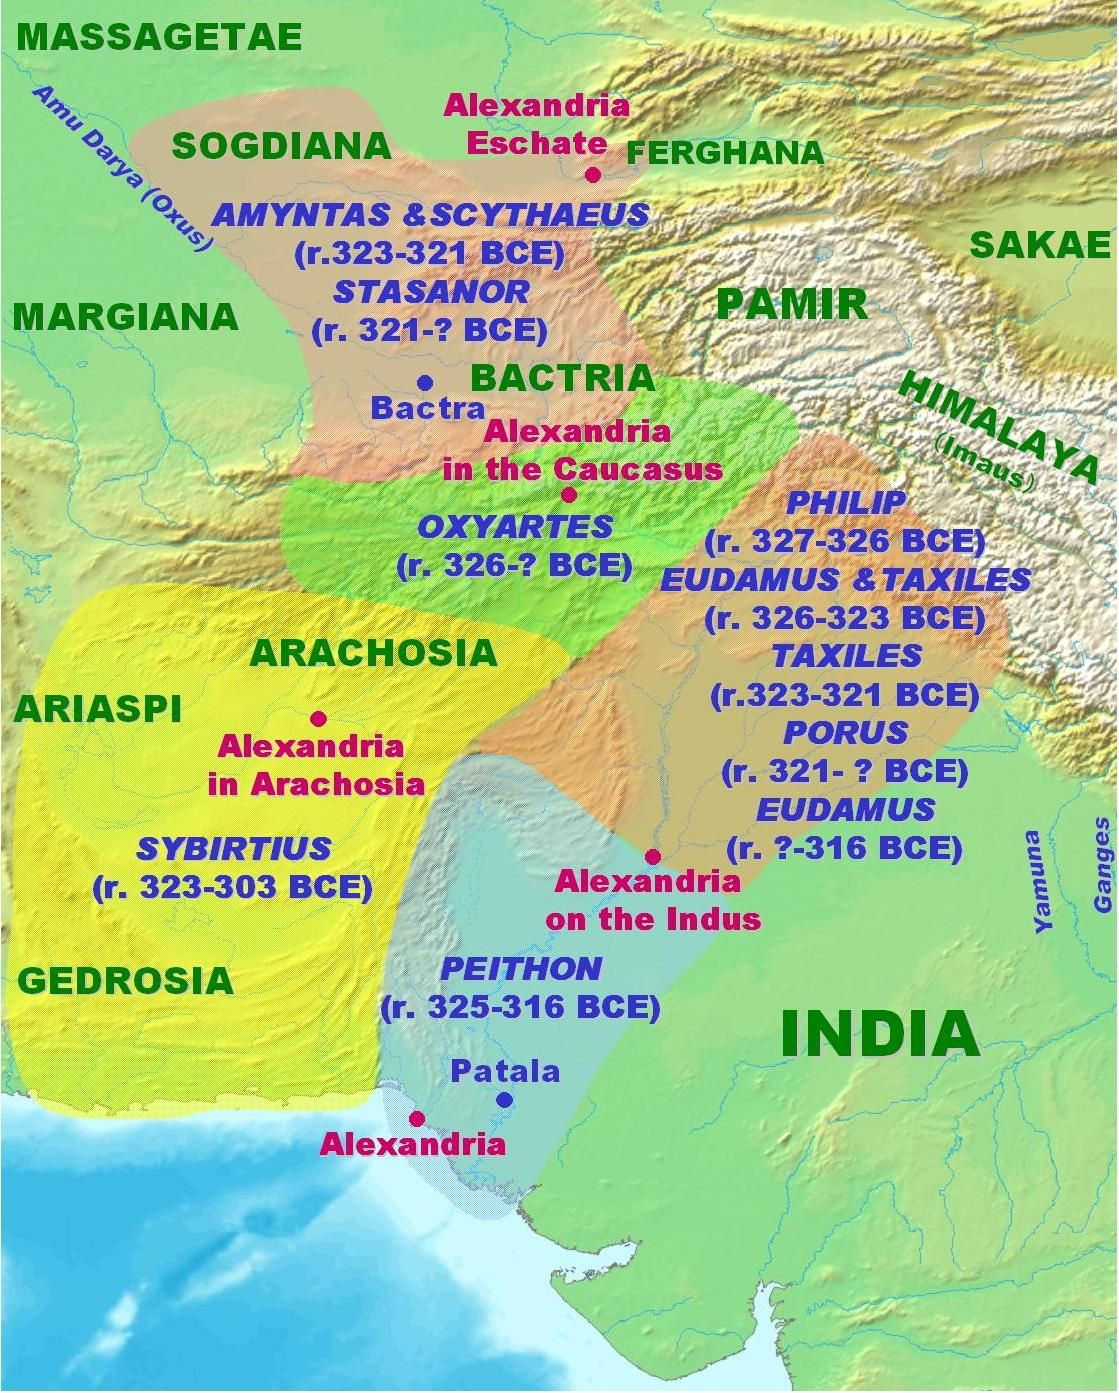 Pin by Sarah S. on india bharat in 2019 | Map, Indus valley ... Indus R Map on krishna map, mekong map, india map, caucasus mountains map, south china sea map, himalayan mountains map, yellow sea map, huang he map, harappa map, danube river map, himalayas map, thar desert map, yellow river map, arabian sea map, sea of japan map, indian ocean map, hindu kush map, congo river map, gobi desert map, ganges map,